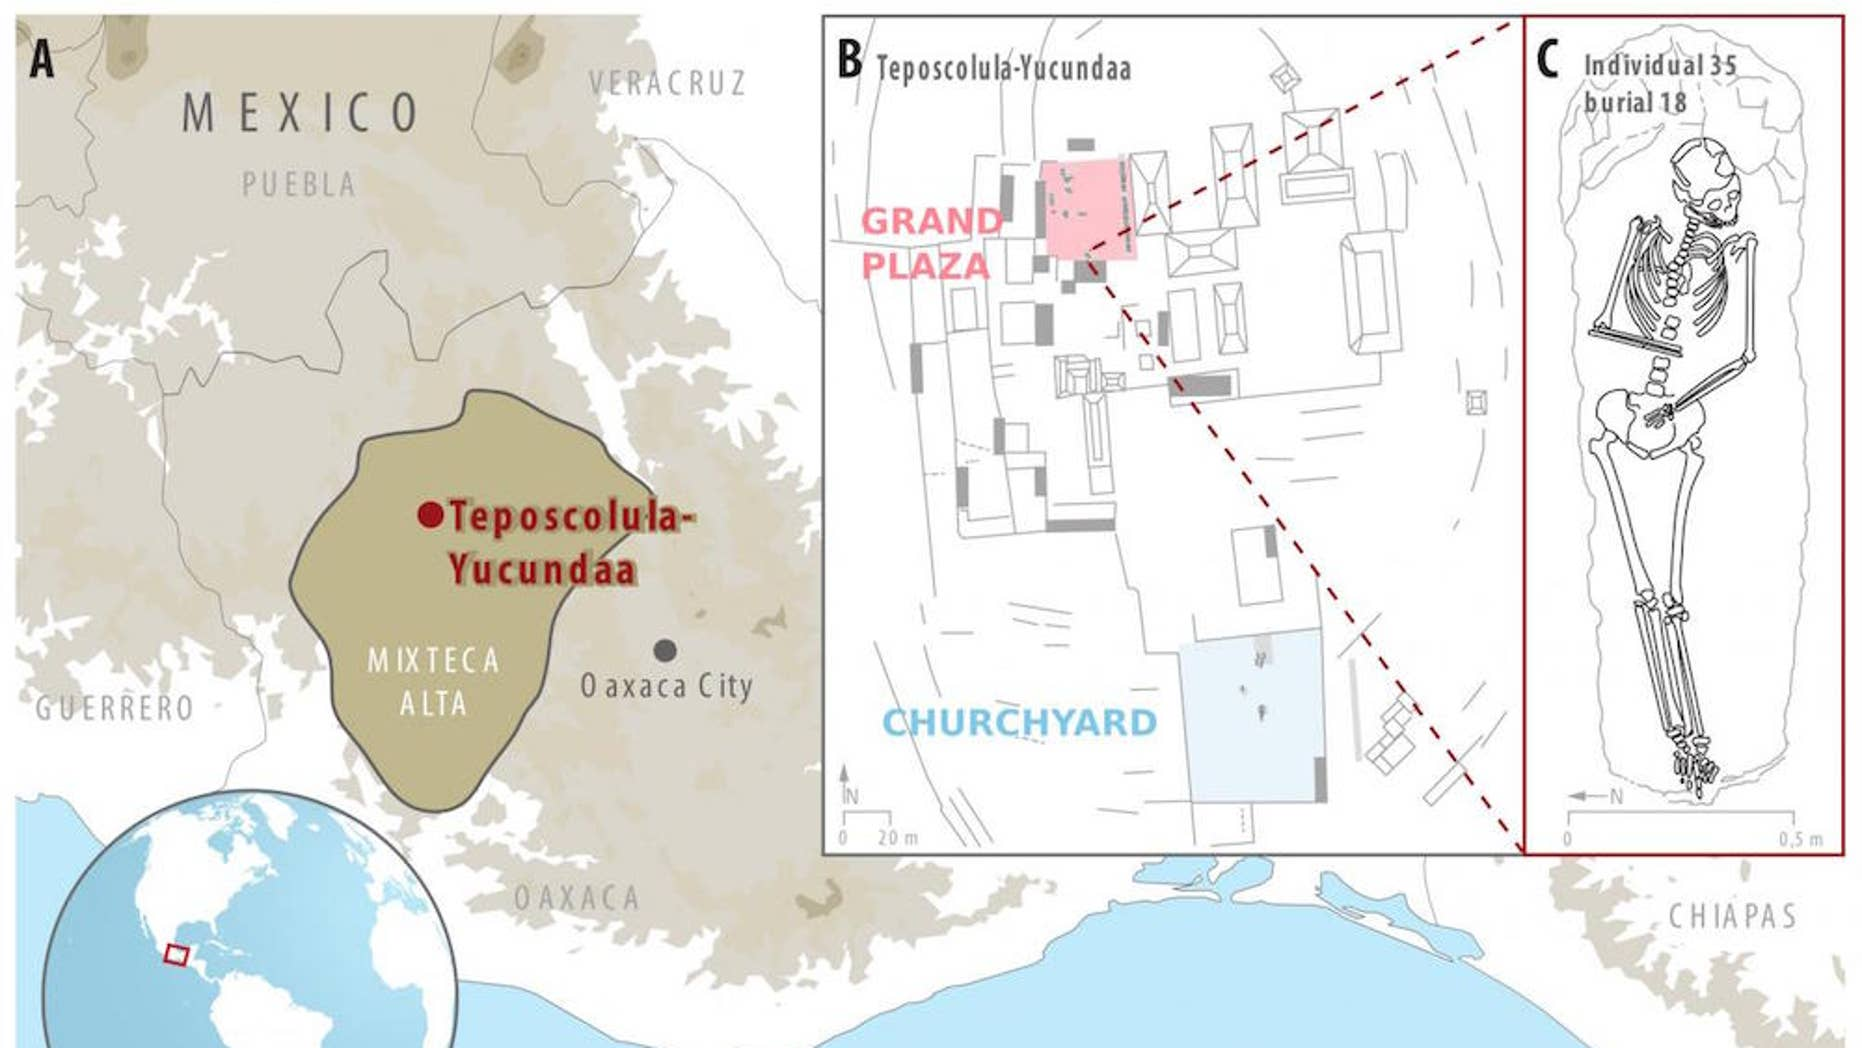 A map (A) showing Teposcolula-Yucundaa in southern Mexico, including where the excavations took place and (B) a drawing of one of the individuals (C) that had <i>Salmonella enterica</i>.